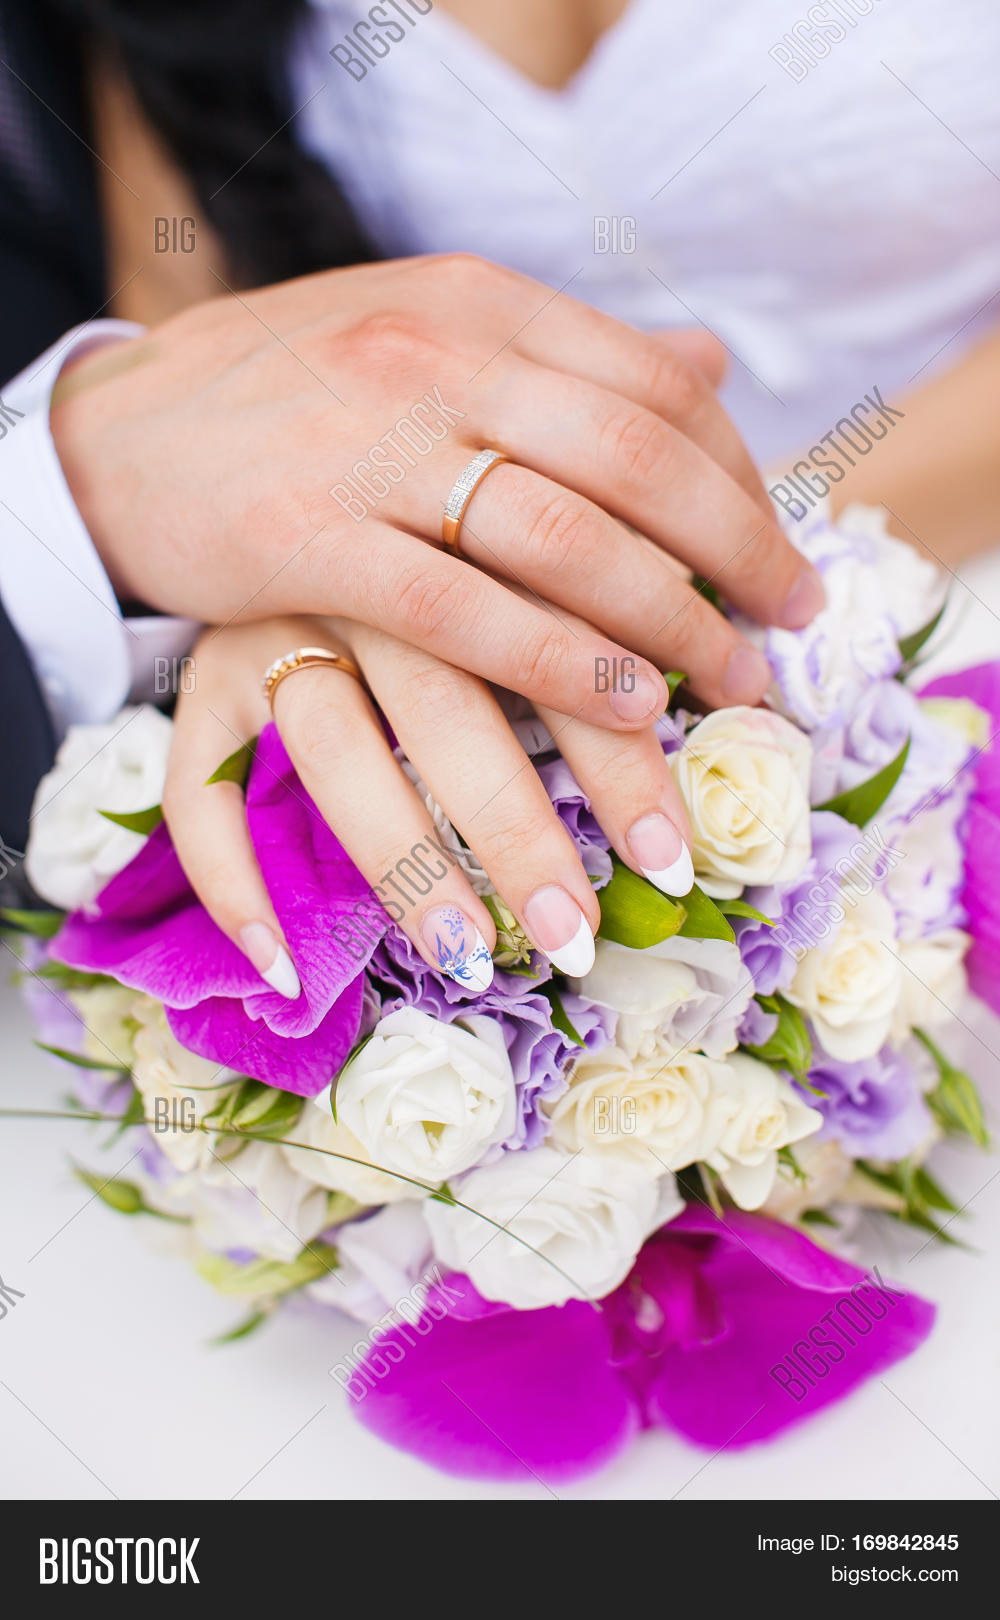 Wedding Rings On Image & Photo (Free Trial) | Bigstock